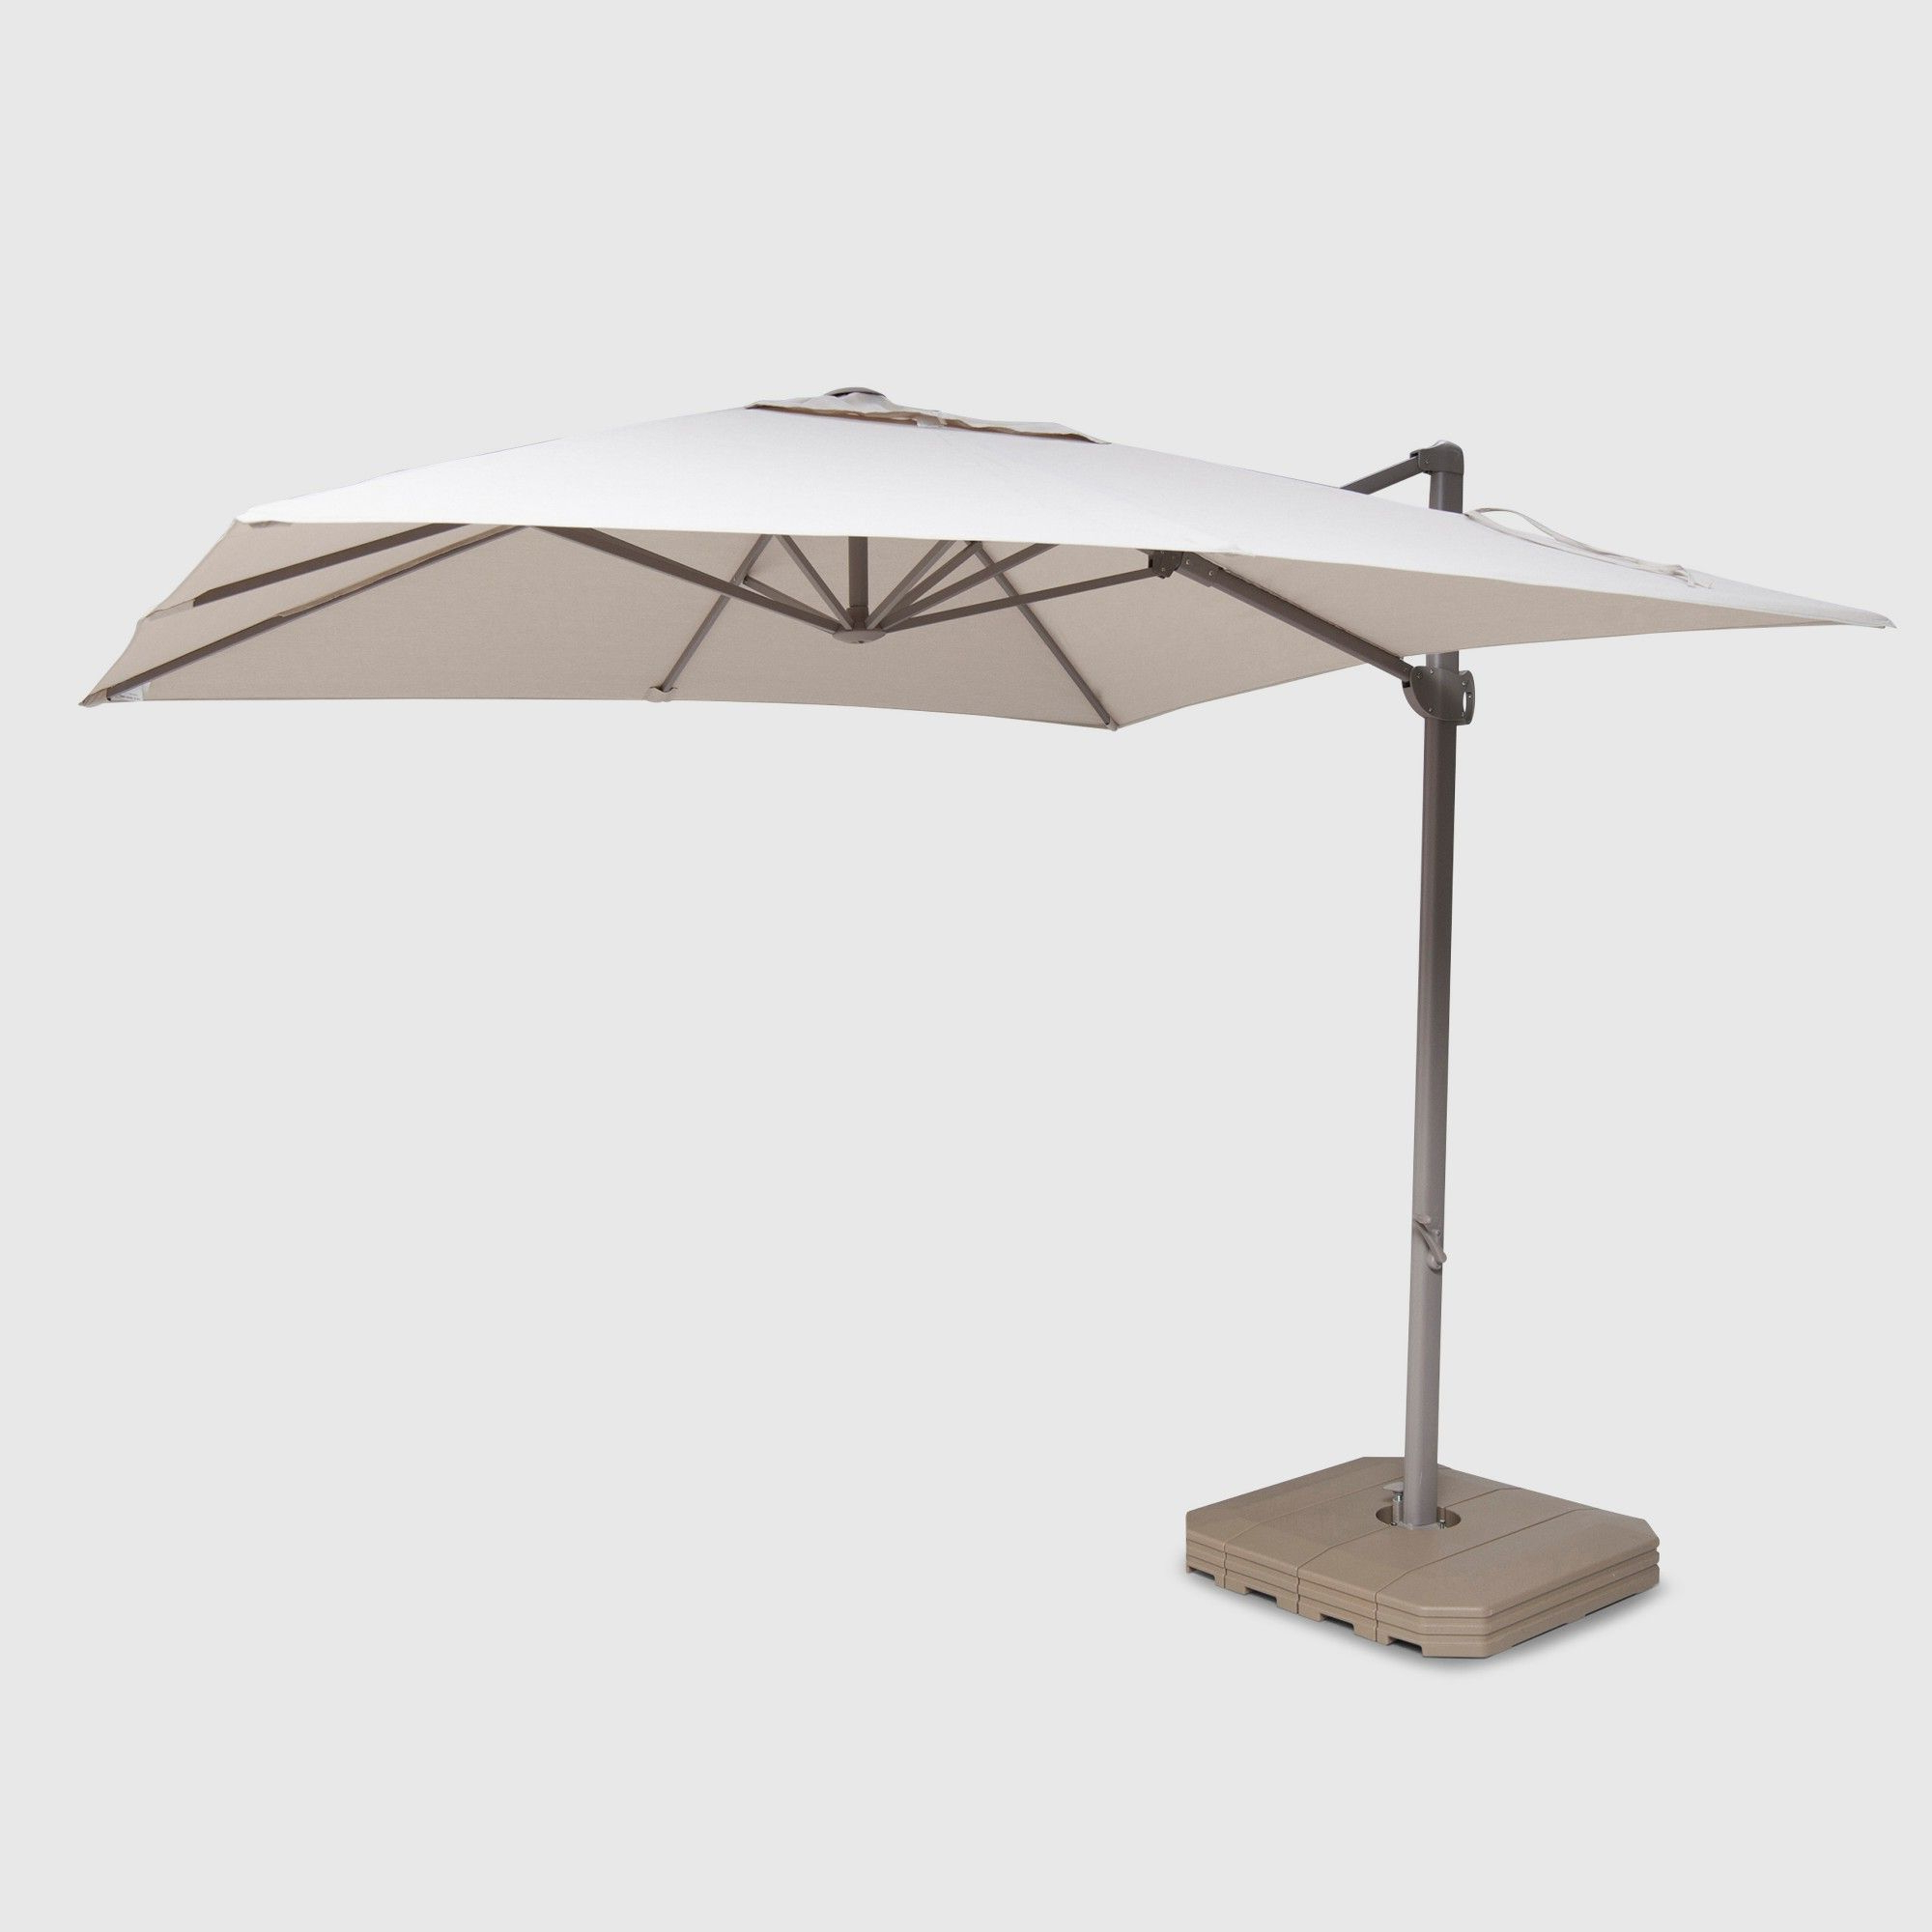 Fashionable 10' Square Offset Patio Umbrella Glacier – Ash Pole – Project 62 In Intended For Fazeley Rectangular Cantilever Umbrellas (View 6 of 20)